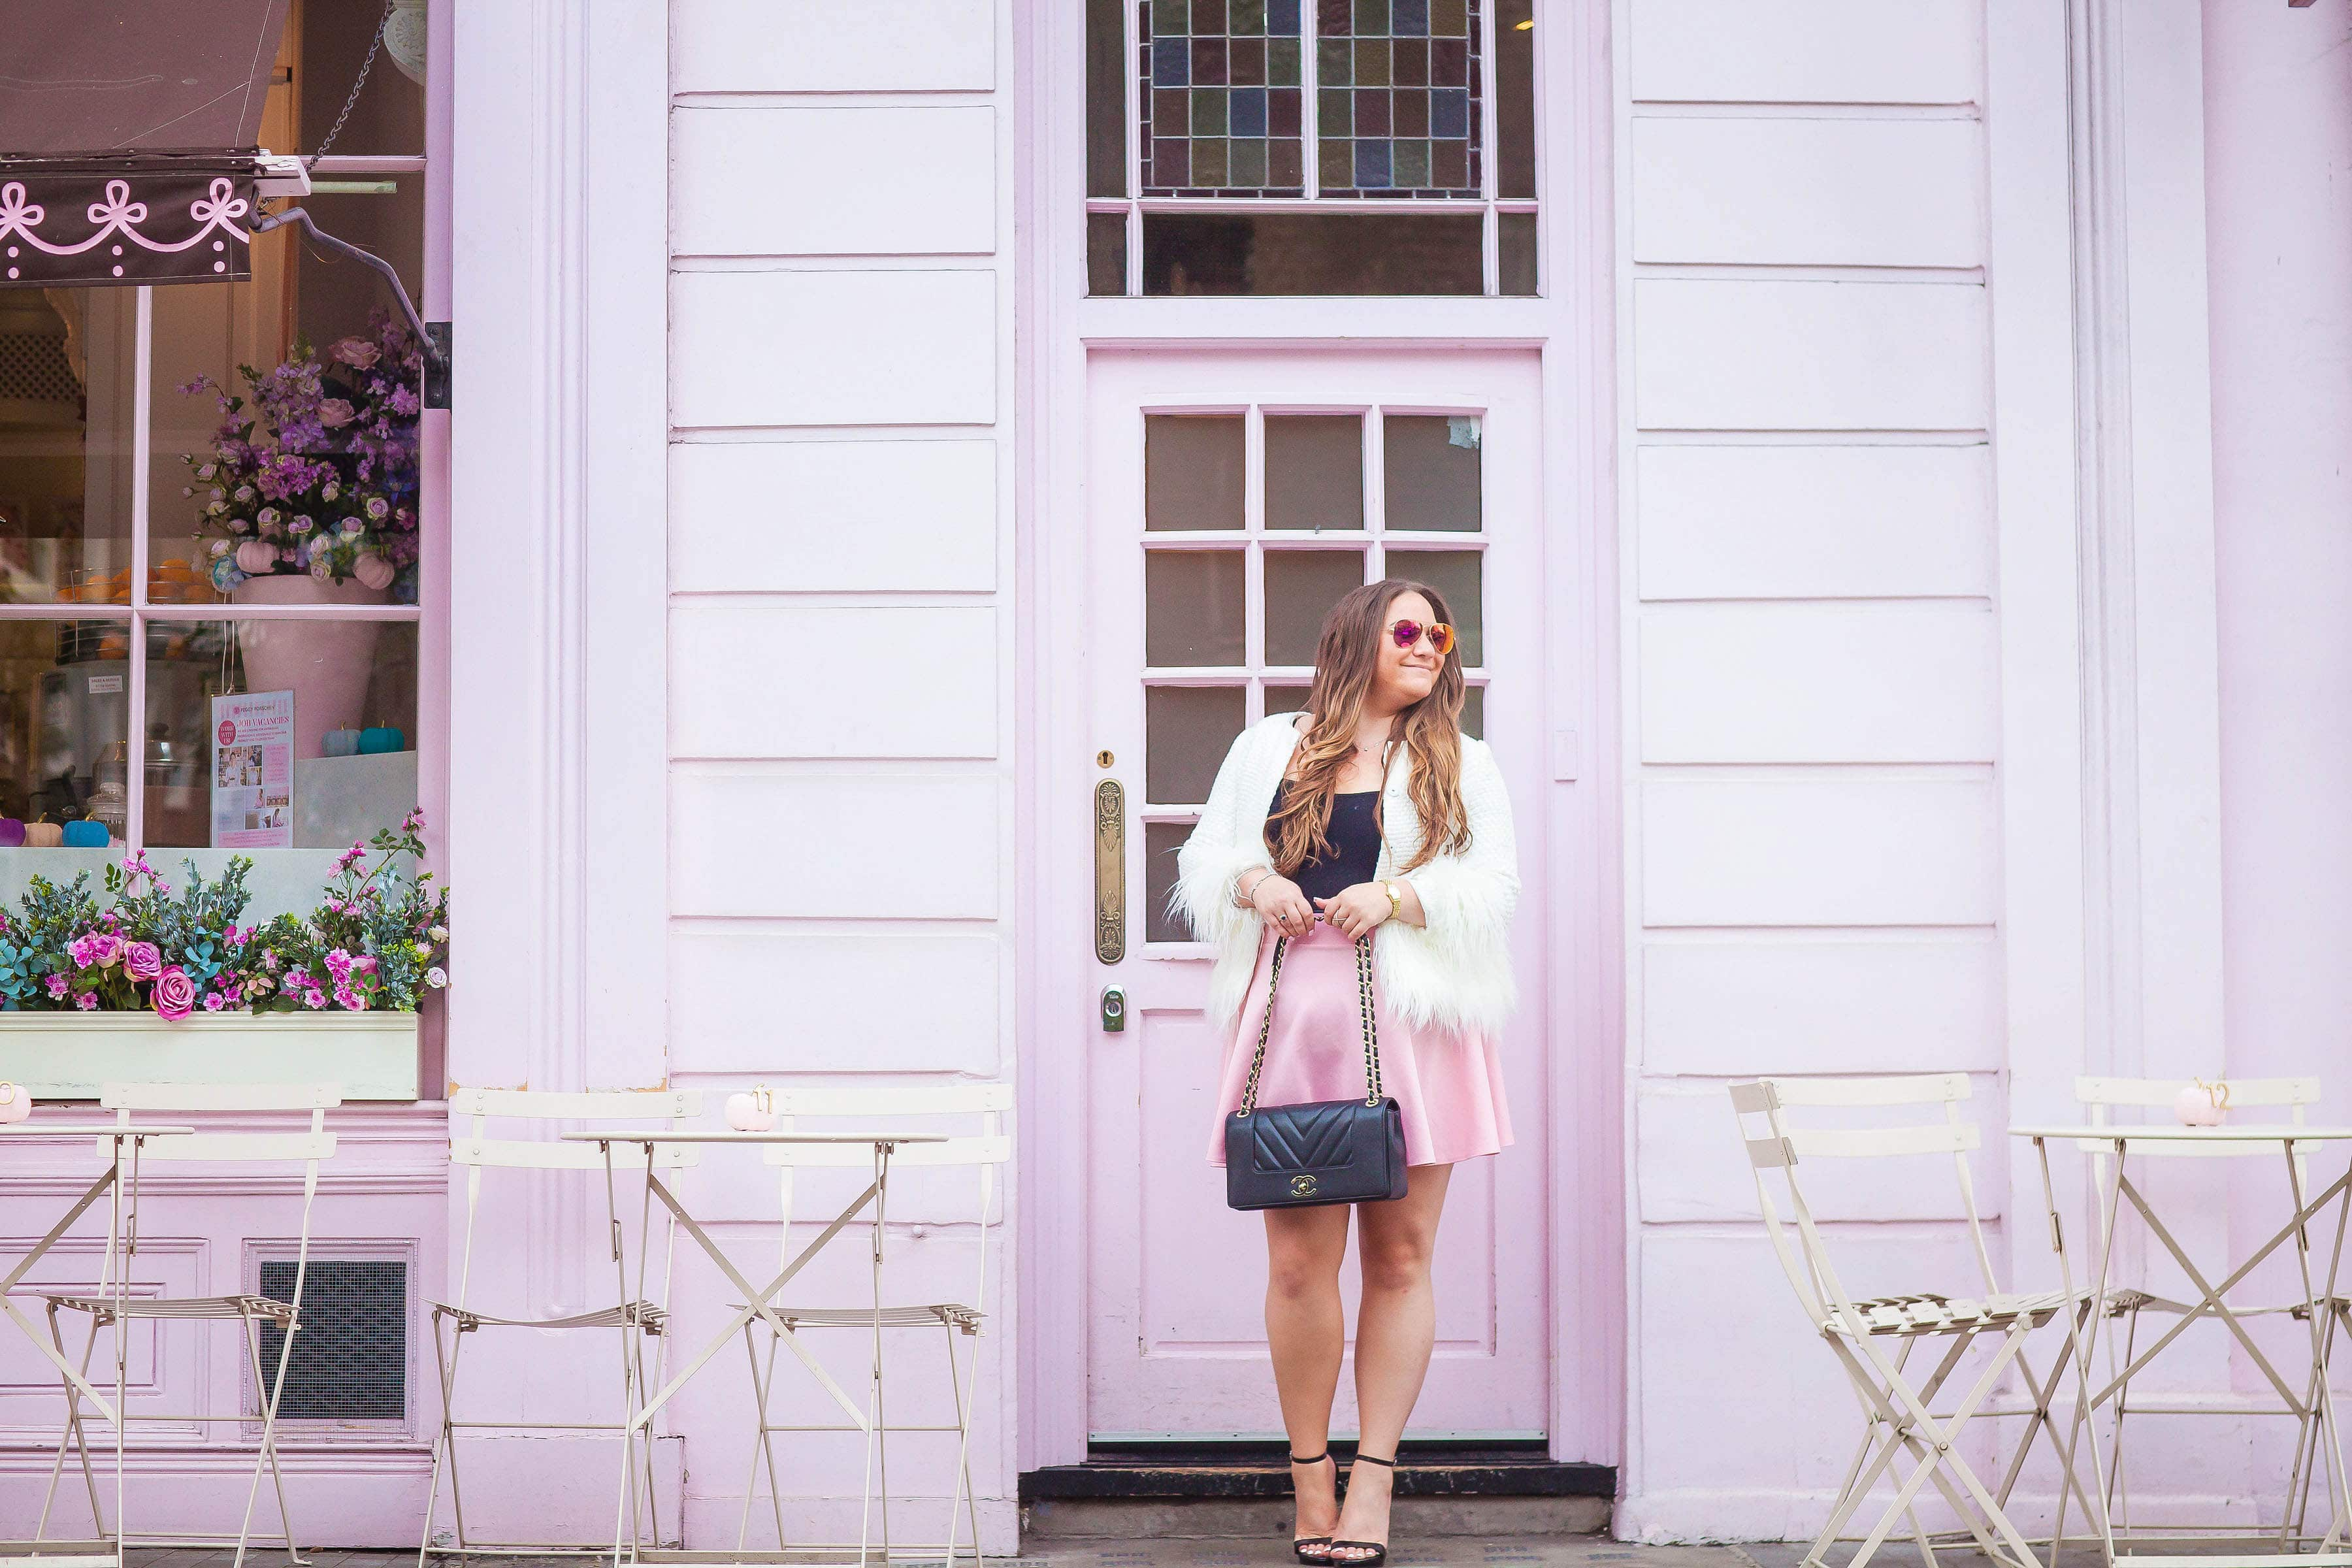 missyonmadison, missyonmadison blog, missyonmadison instagram, fashion blog, fashion blogger, style blog, style blogger, ootd, peggy porschen, london visit, london sightseeing, london cafe, peggy porschen london, peggy porschen cakes, places to visit in london, instagram places london, pink skater skirt, pink scuba skirt, black body suit, pink raybans, black ankle strap heels, steve madden black ankle strap heels, chanel bag, chanel flap bag, shein, shein tweed coat, white faux fur coat, white tweed coat with faux fur trim, visit london, la blogger, winter style, fall style,